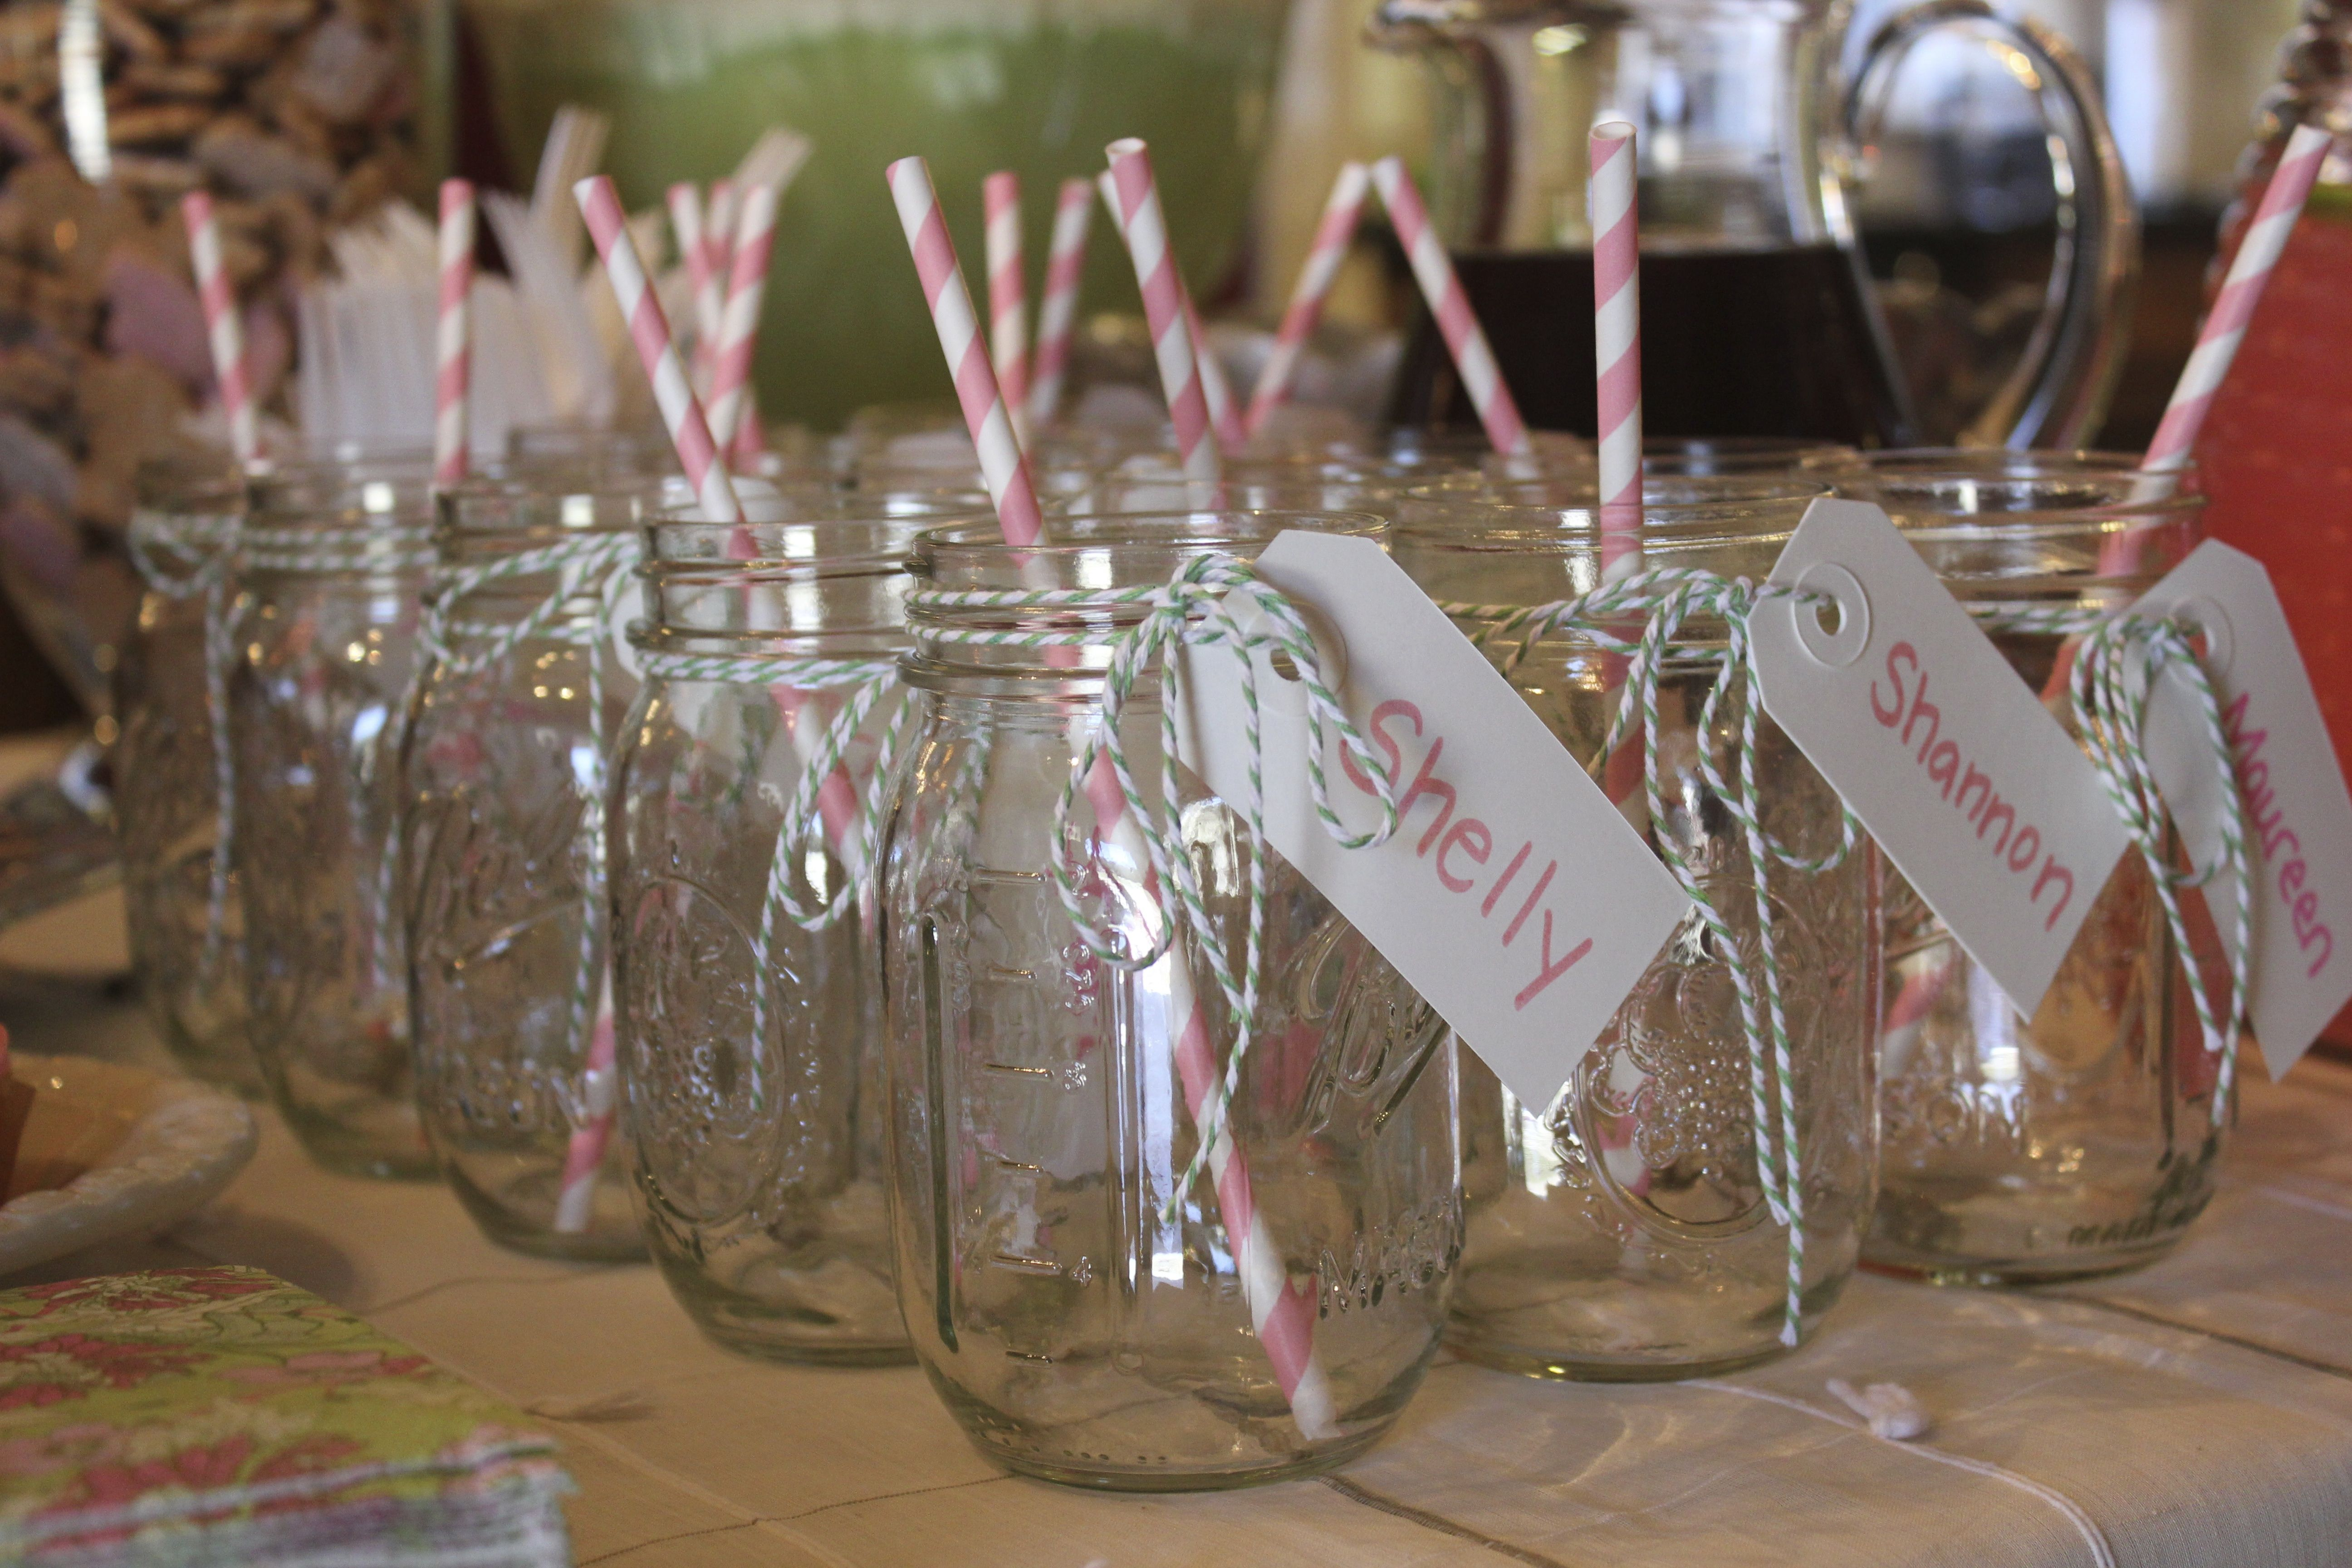 Mason jar glasses/favors for baby shower. | My Pinterest ...